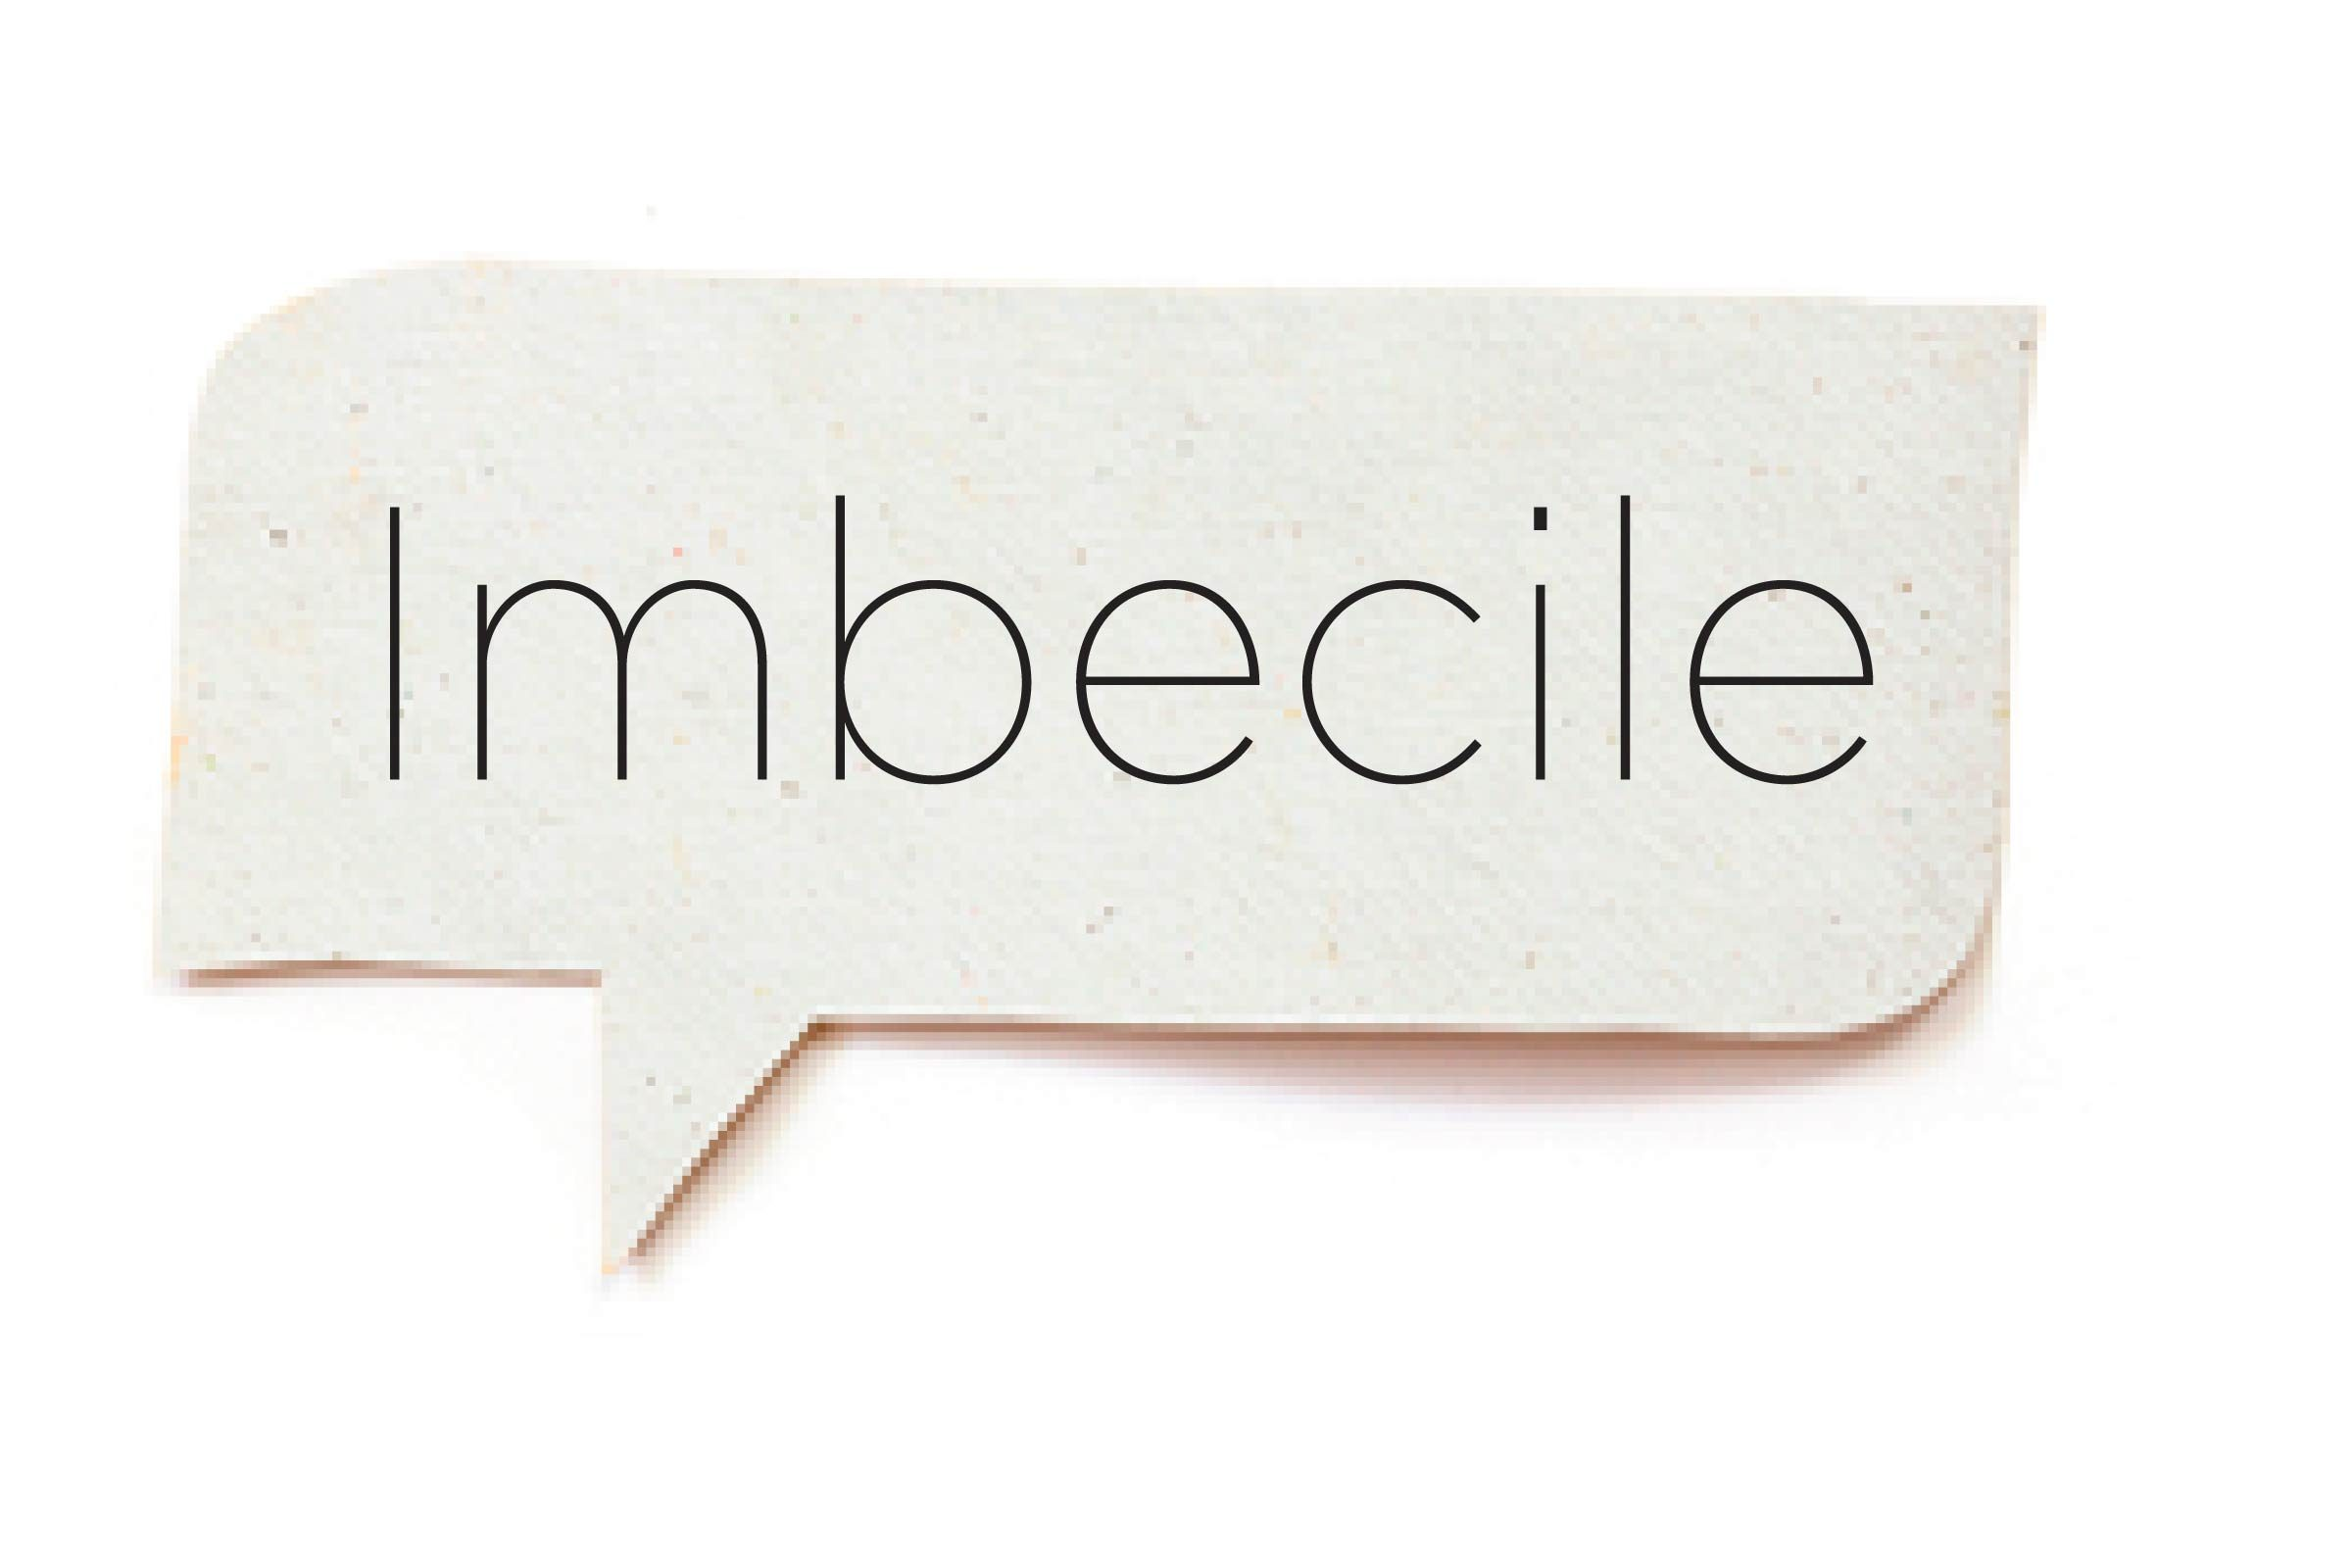 Offensive words - Imbecile